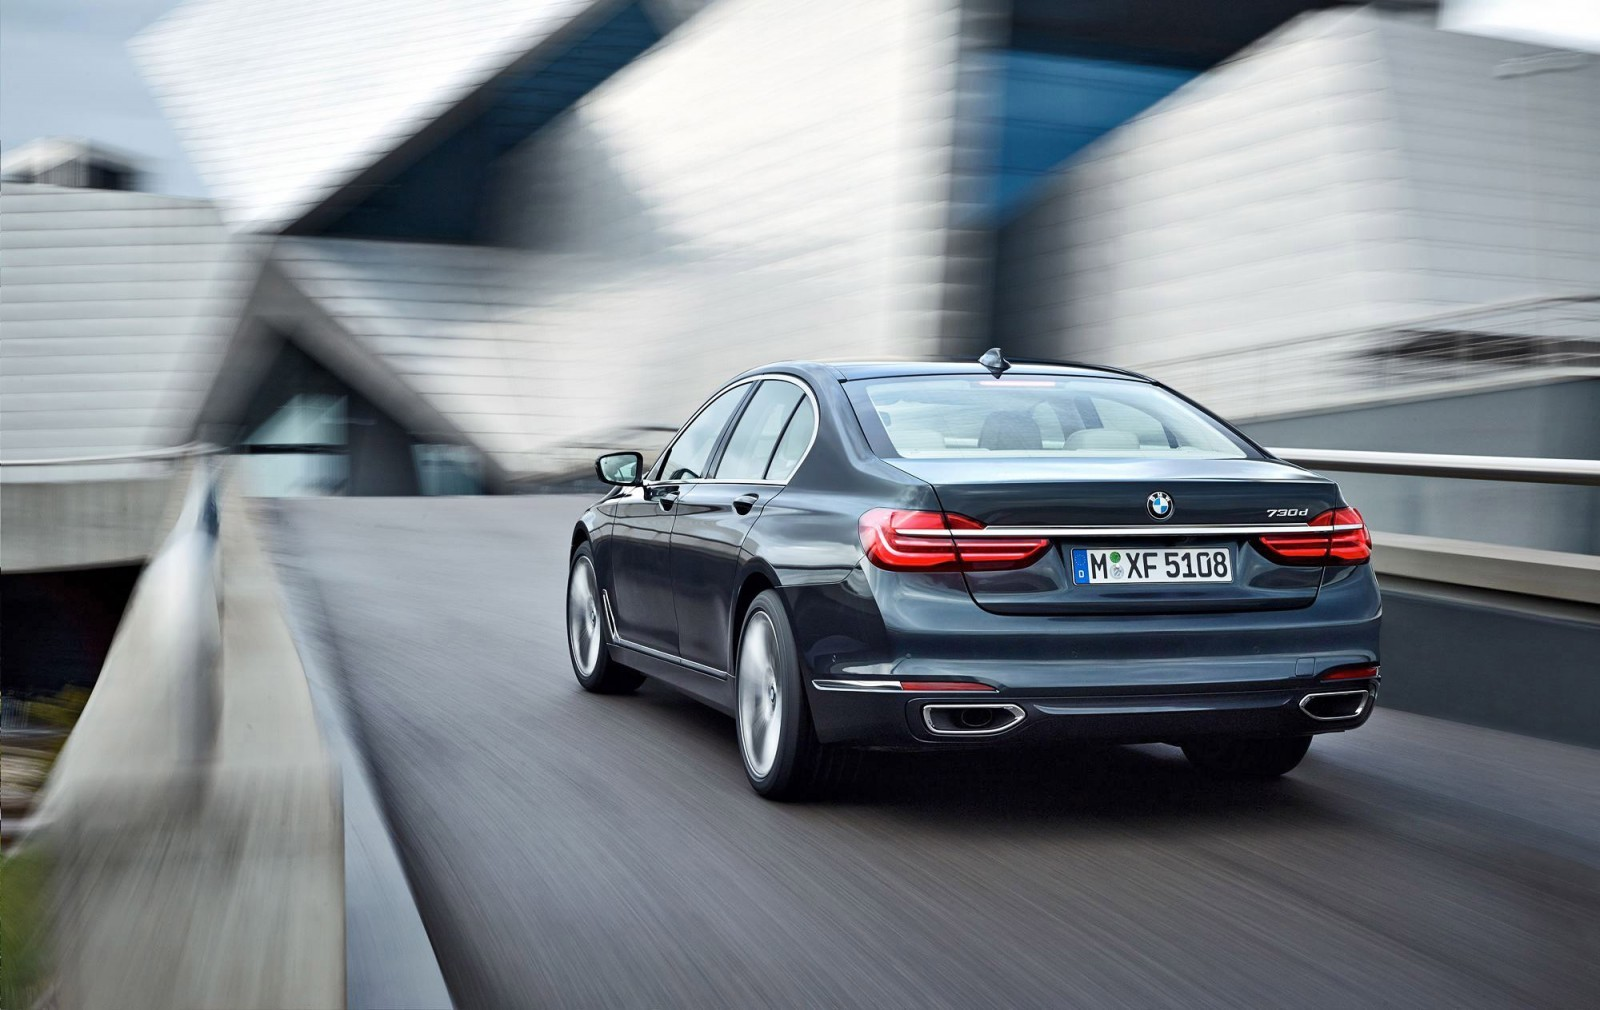 2016 BMW 750 Exterior Photos 4